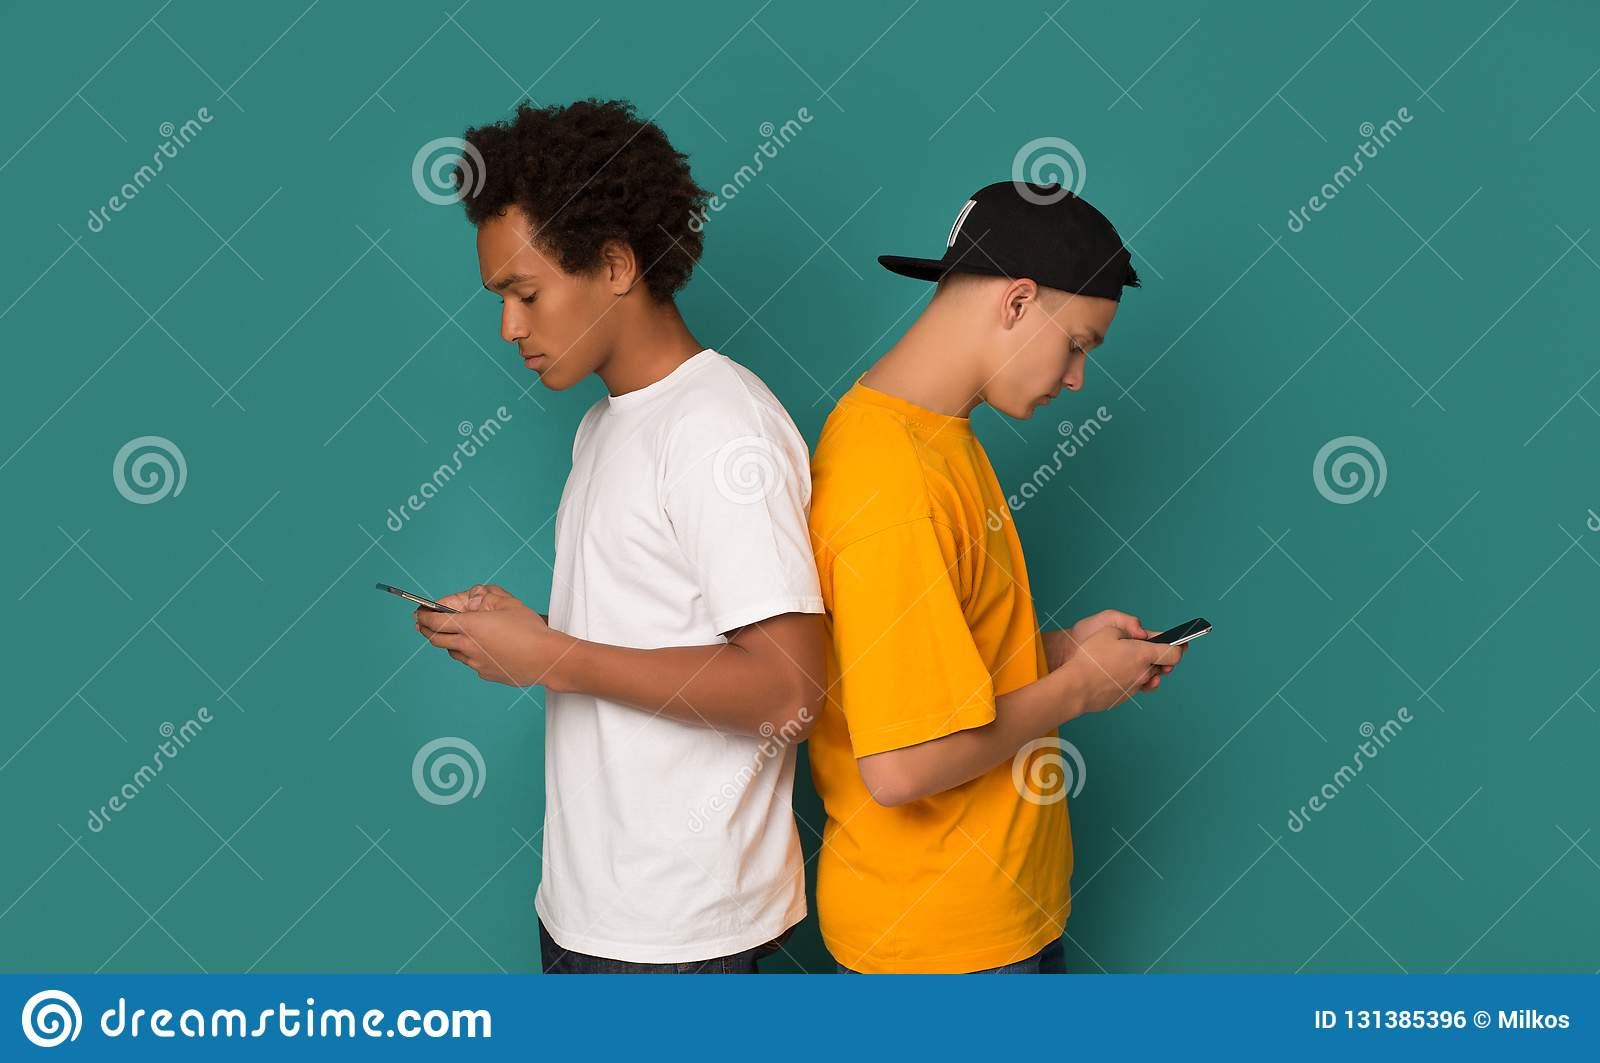 Smartphone addiction. Friends standing back to each other